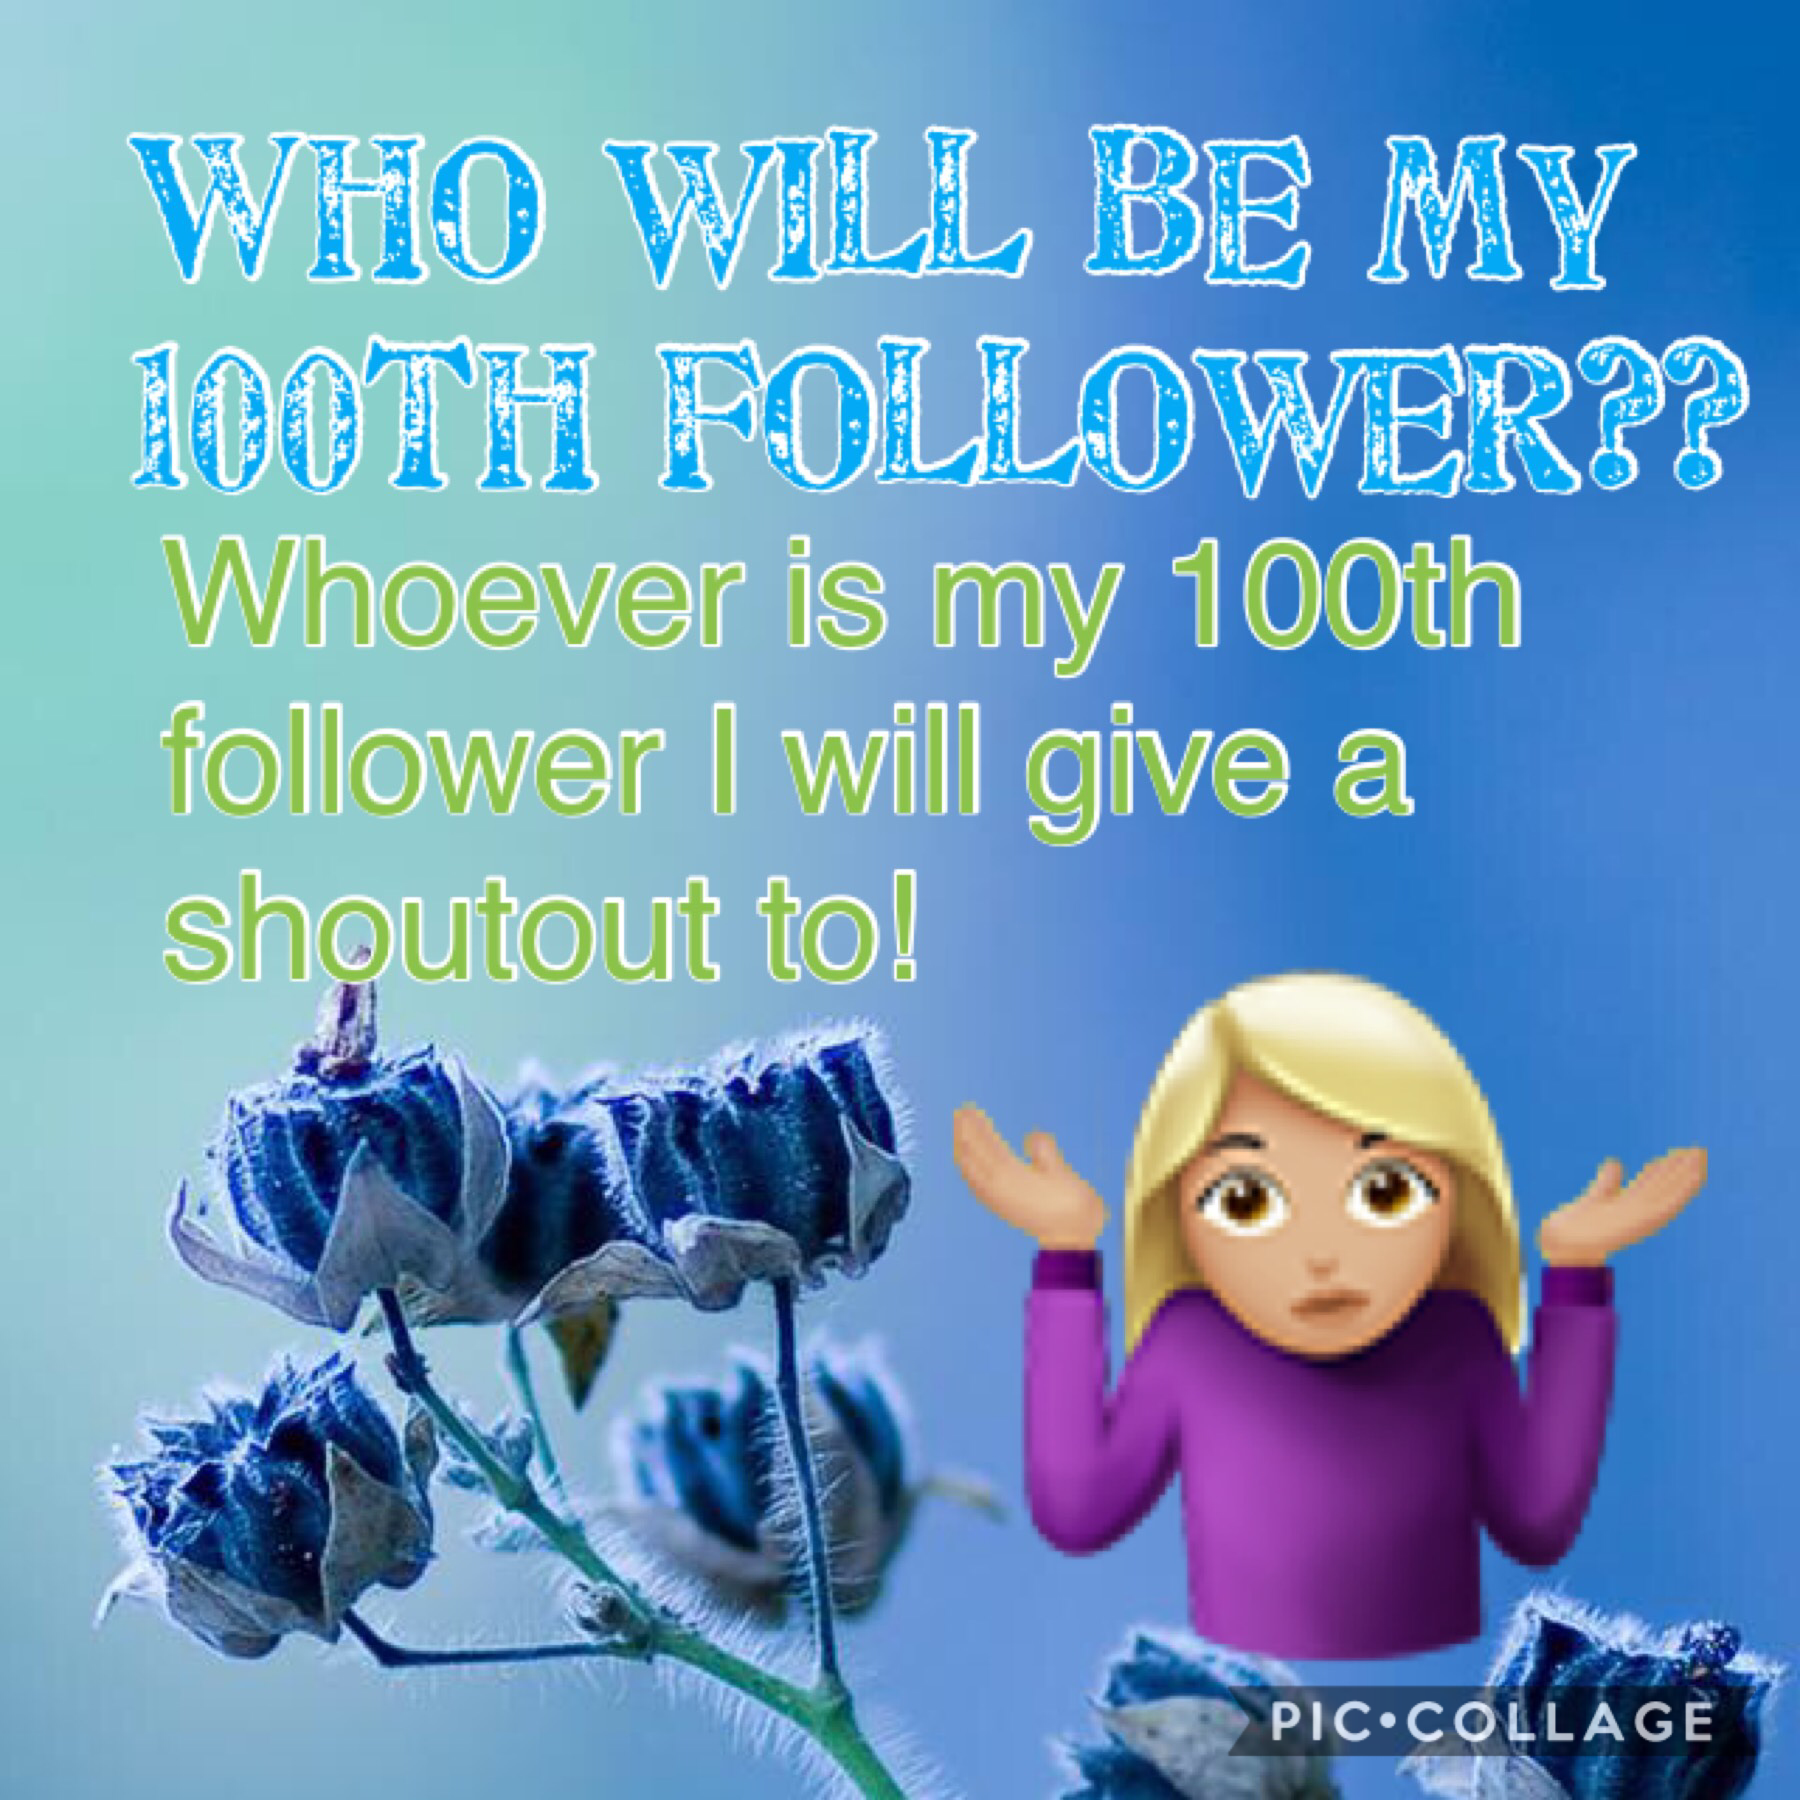 Will you be my 100th follower?? Hmm... 🤔 or will you?? 🤷🏼‍♀️🤷🏼‍♀️